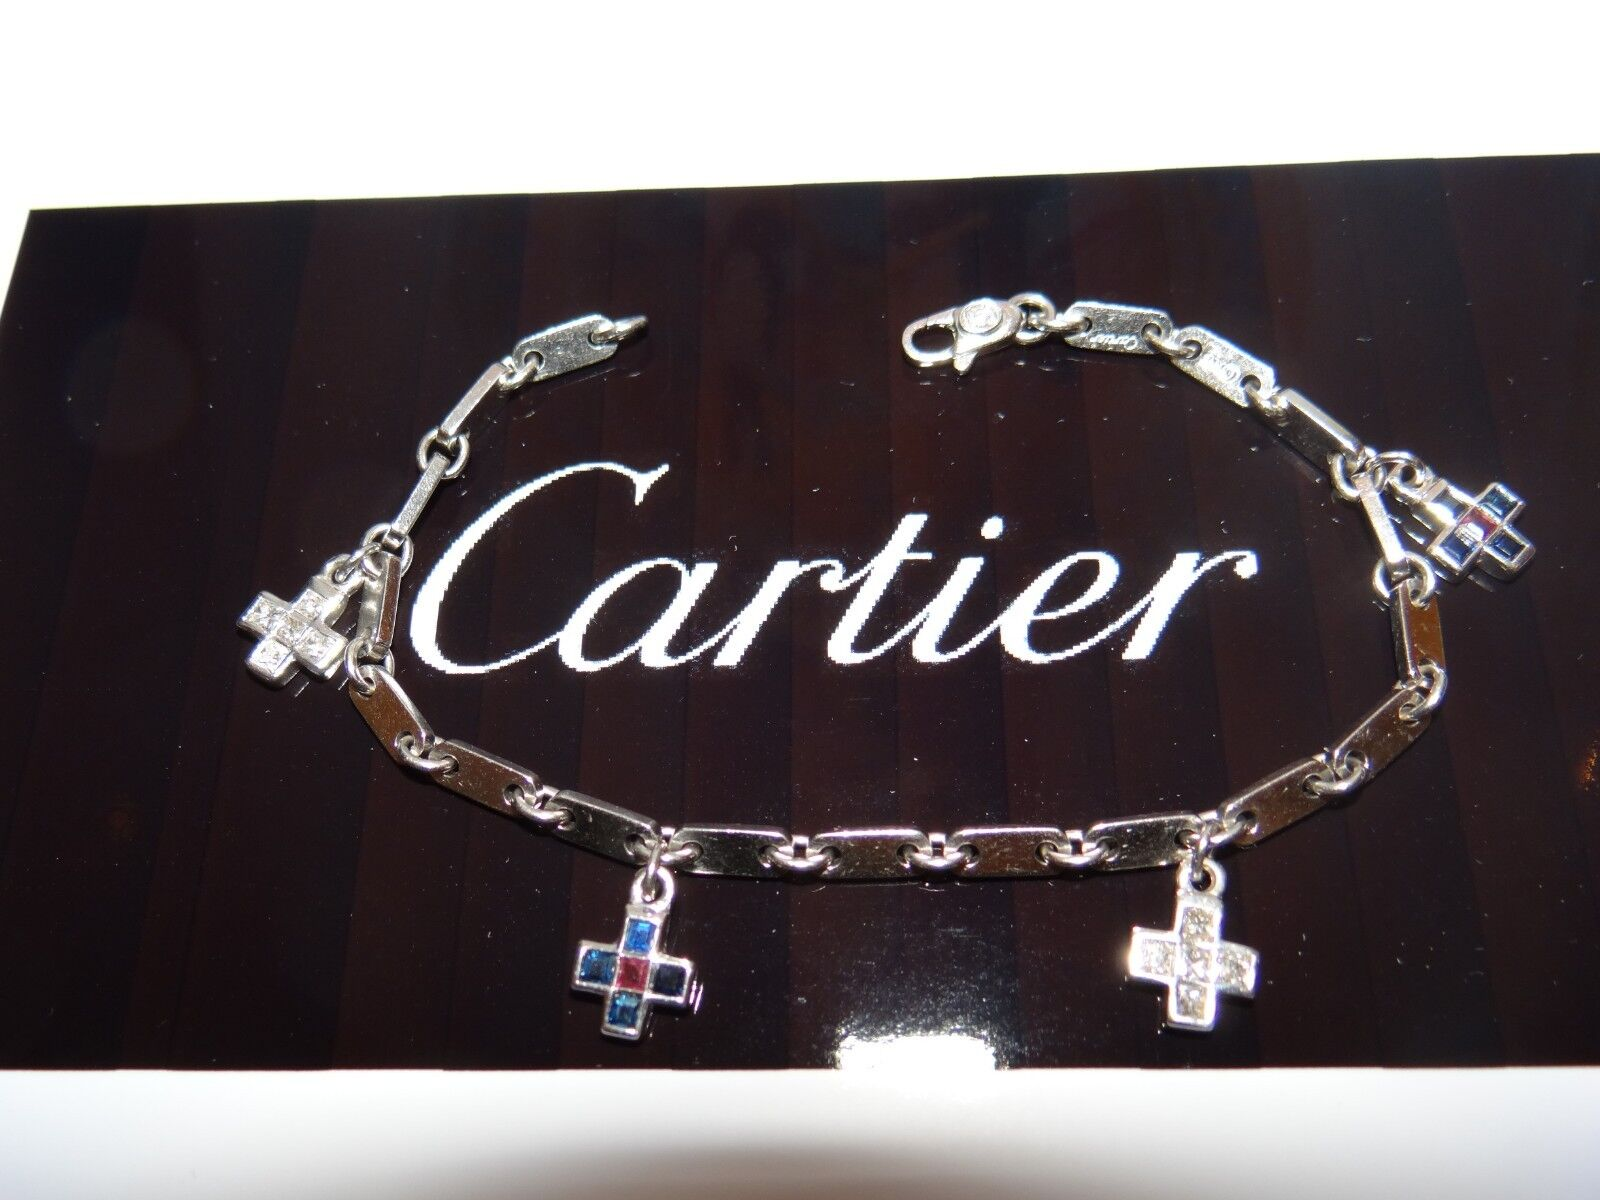 Cartier Charm Bracelet 18k Crosses With Diamonds, Rubies and Sapphires